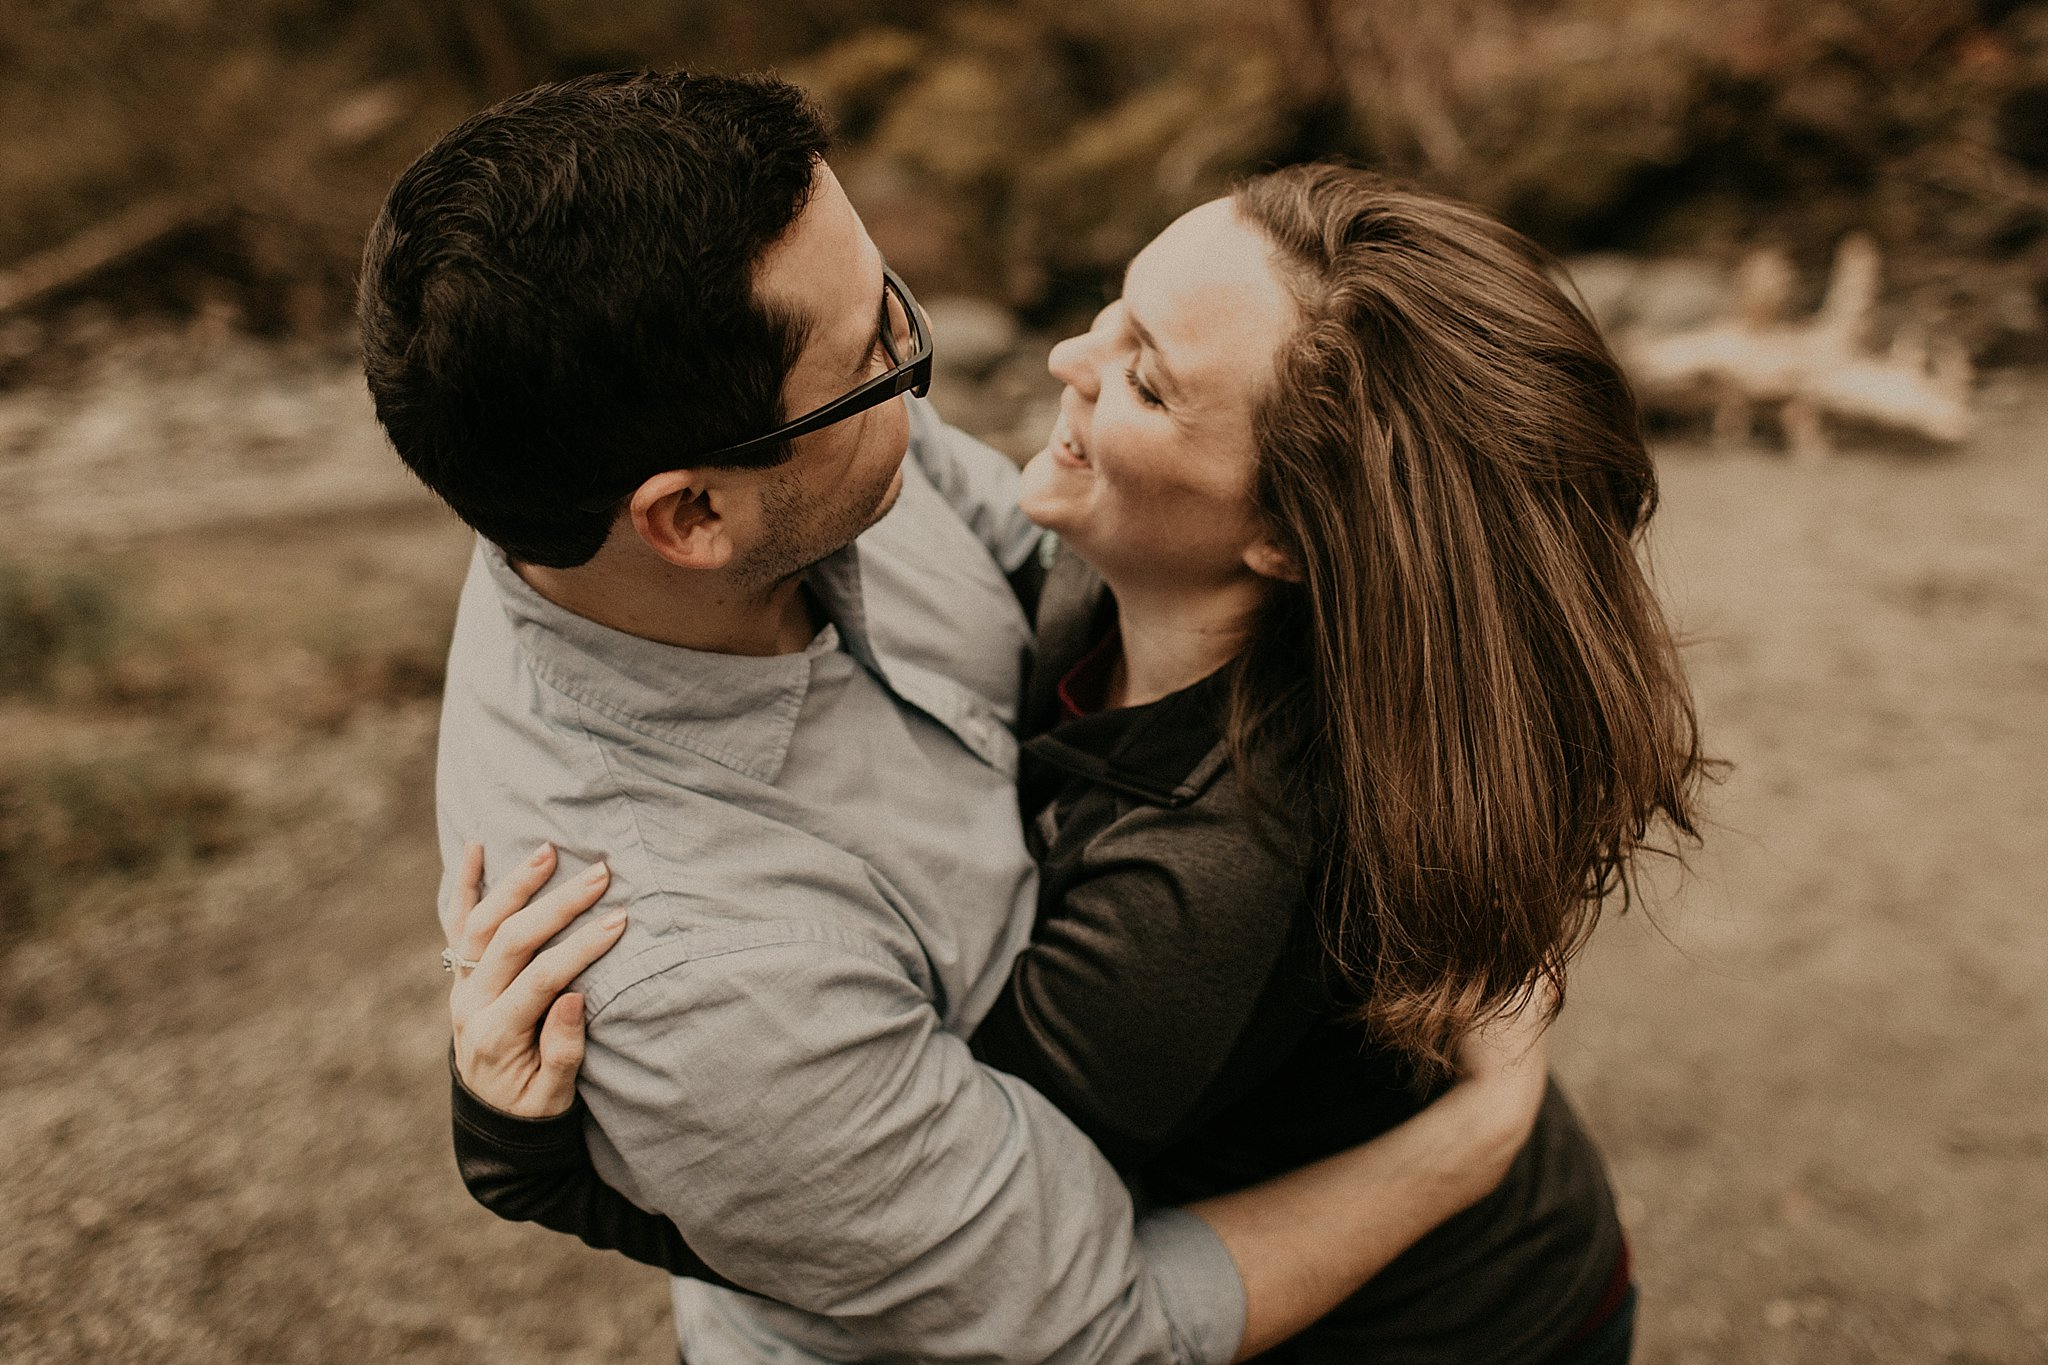 samantha_mcfarlen_bellingham_washington_engagement_photography_seattle_wedding_photographer_0692.jpg